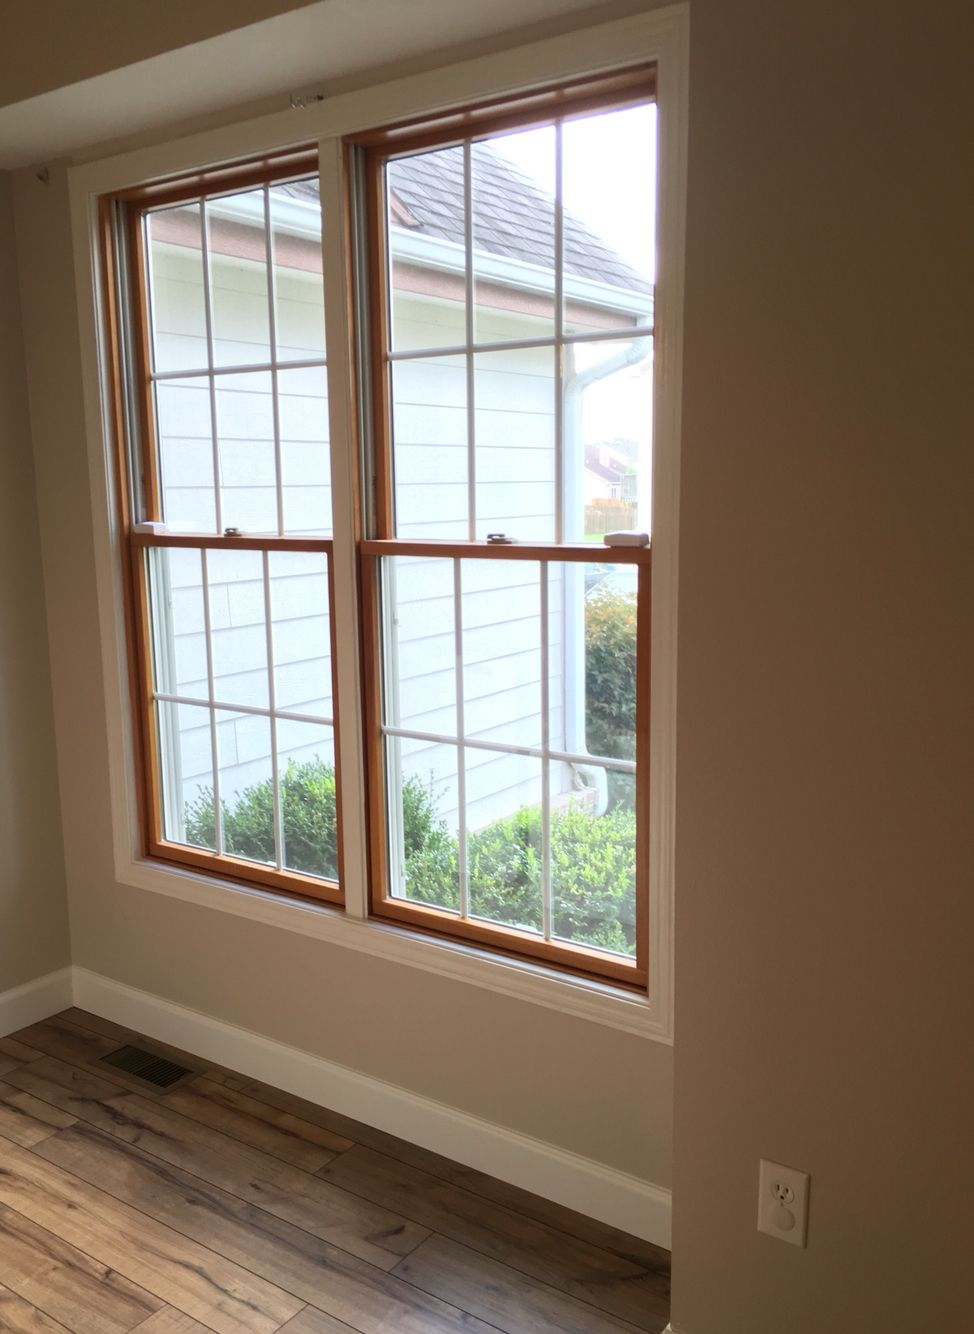 Wood windows white trim shaw laminate floor in for How to paint wood windows interior